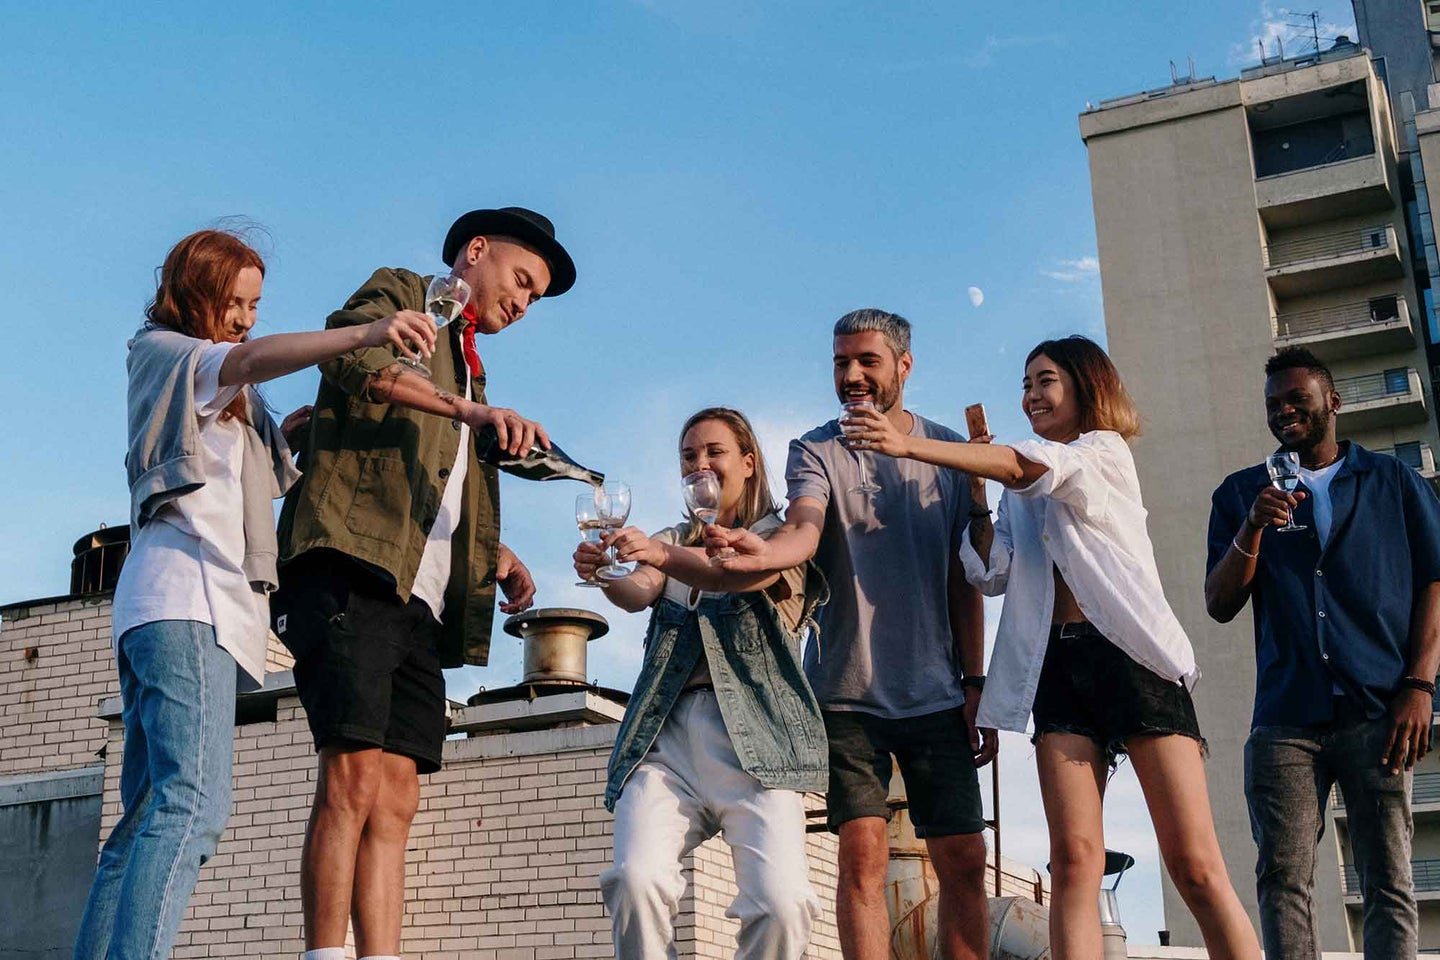 Group of friends drinking wine on a rooftop